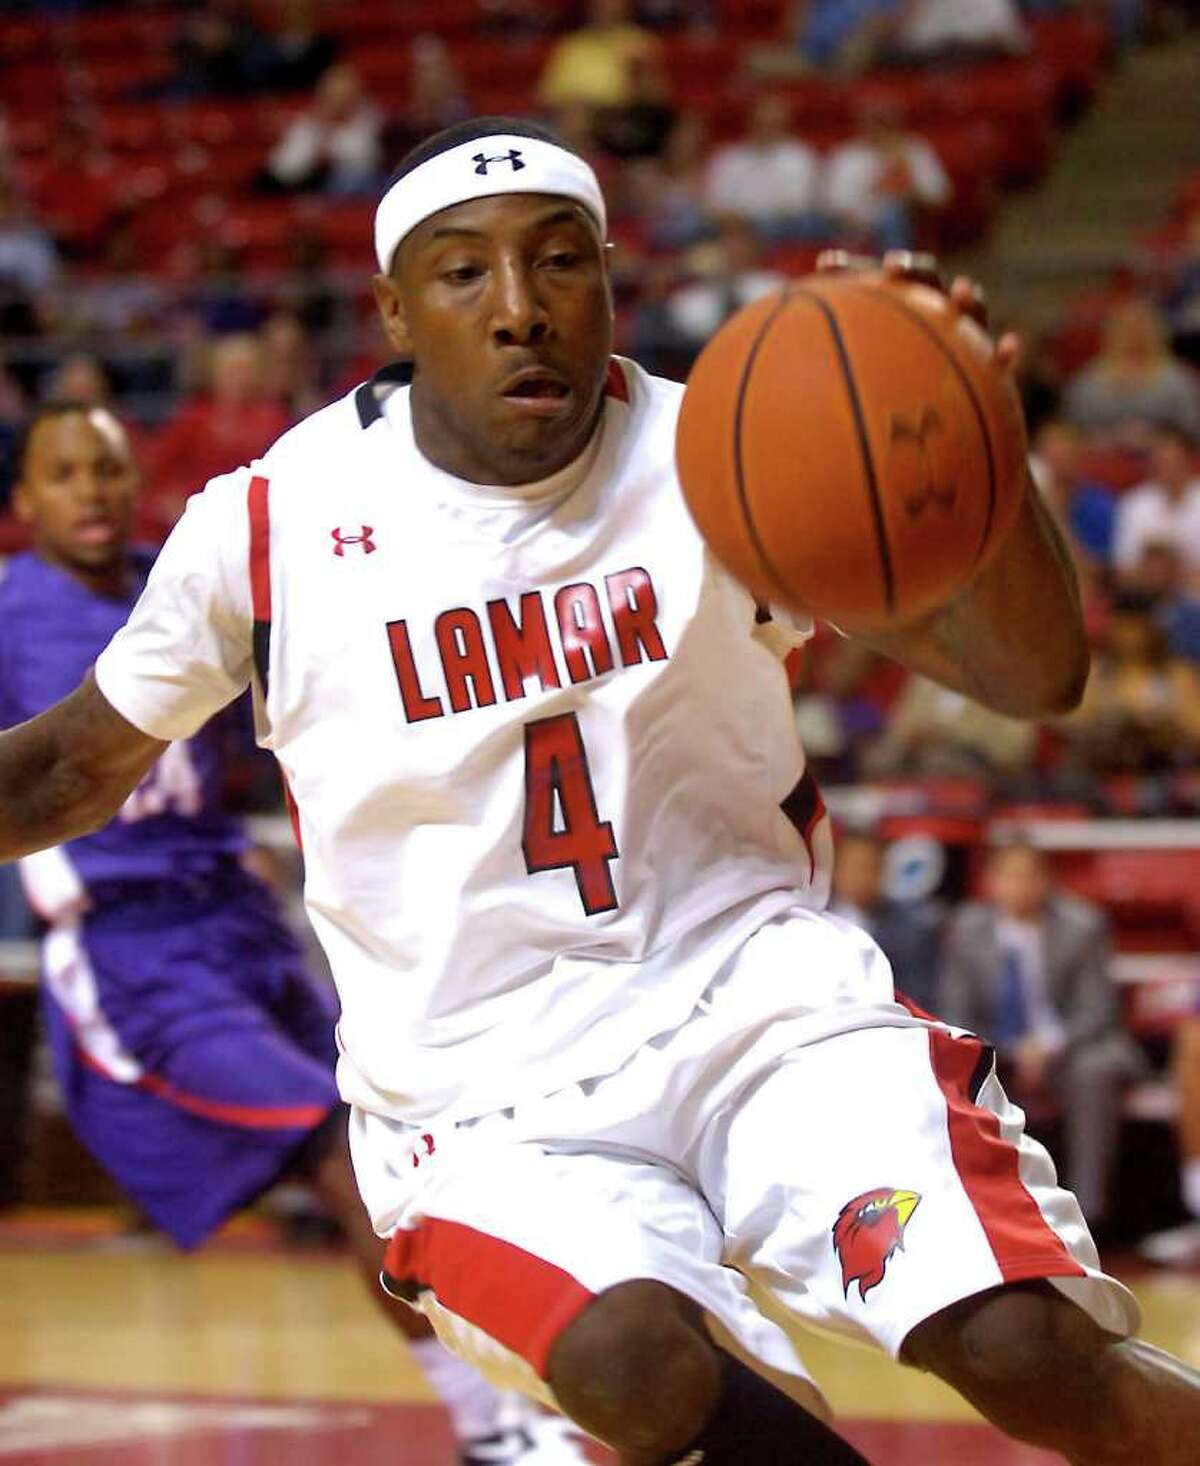 Lamar's Devon Lamb saves a loose ball from going out of bounds during the game against Stephen F. Austin at Lamar Univerisity in Beaumont, Wednesday, February 22, 2012. Tammy McKinley/The Enterprise